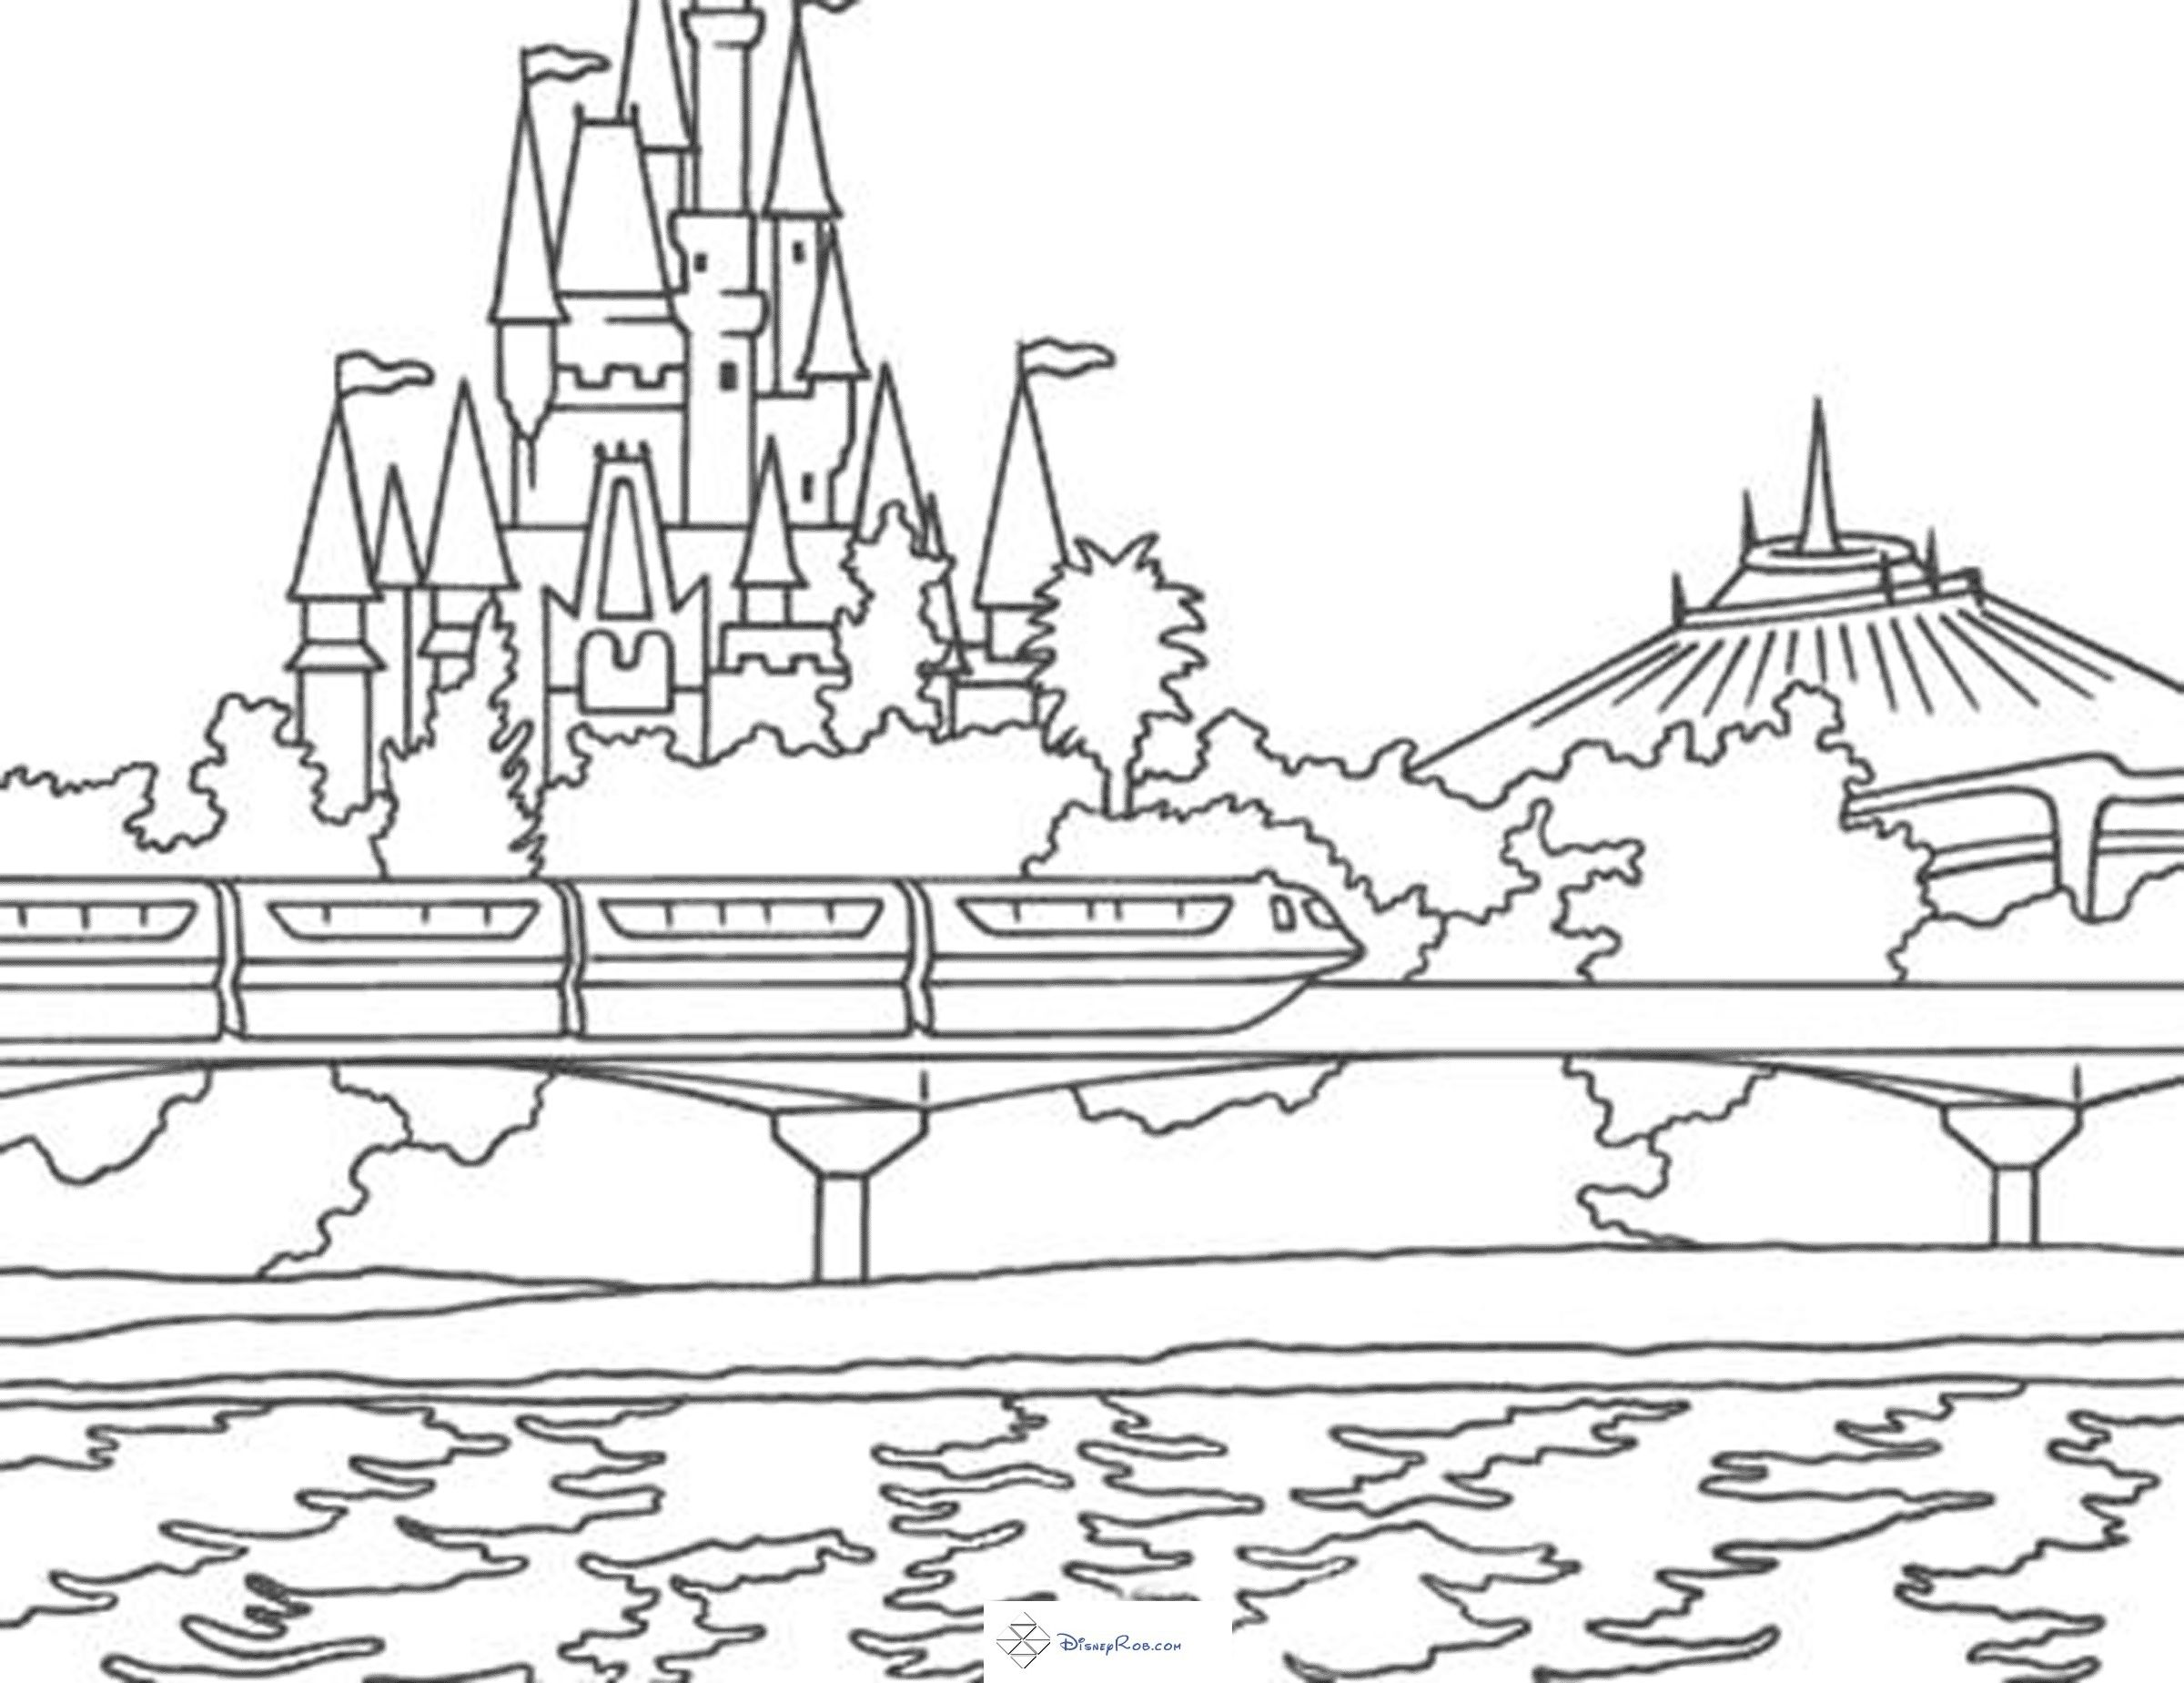 Walt Disney World Printable Coloring Pages Disney Activities Disney Printables Disney Coloring Pages